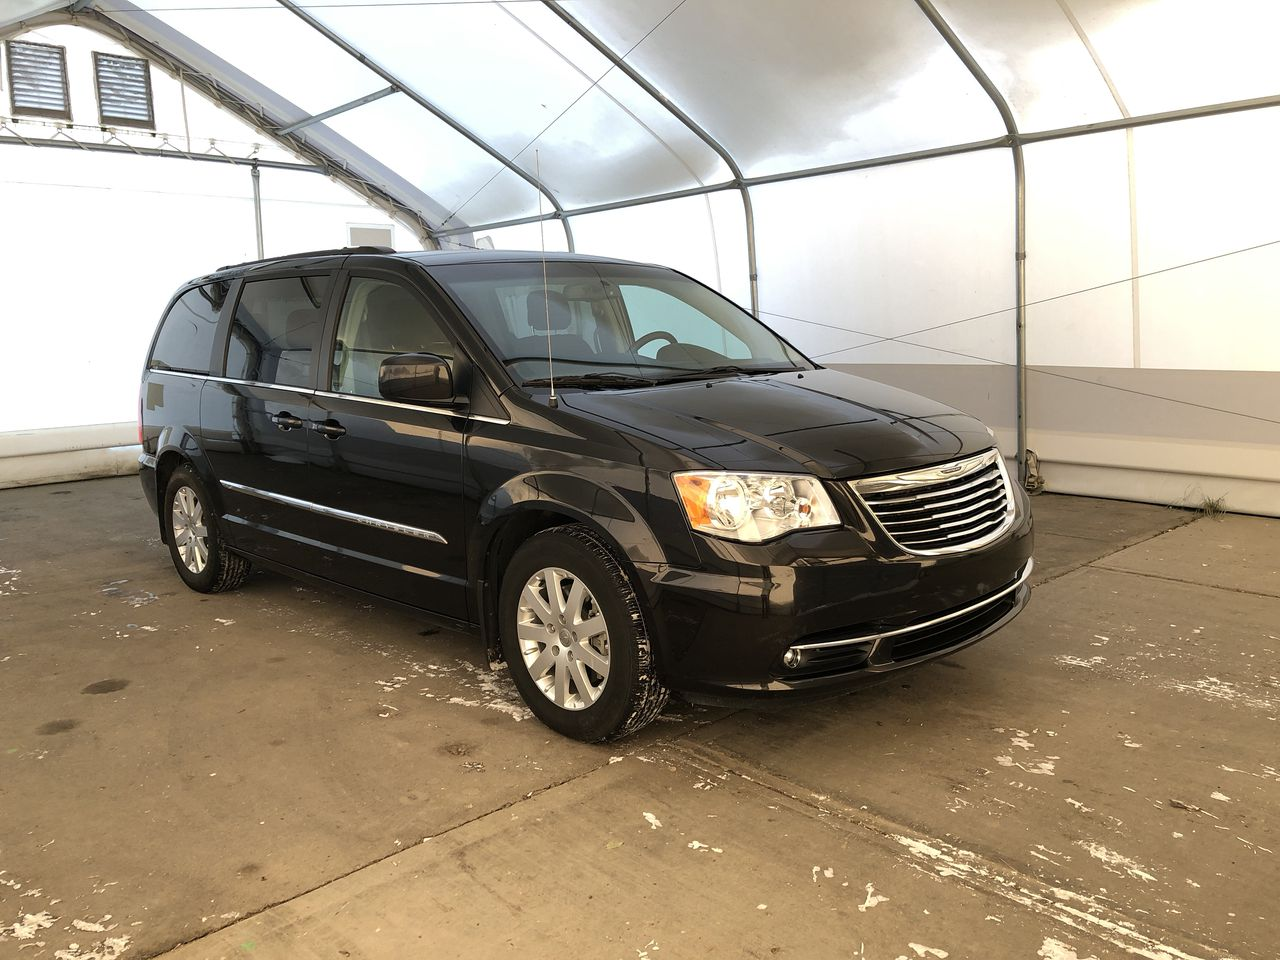 2015 Chrysler Town & Country Touring (N6671B) Main Image